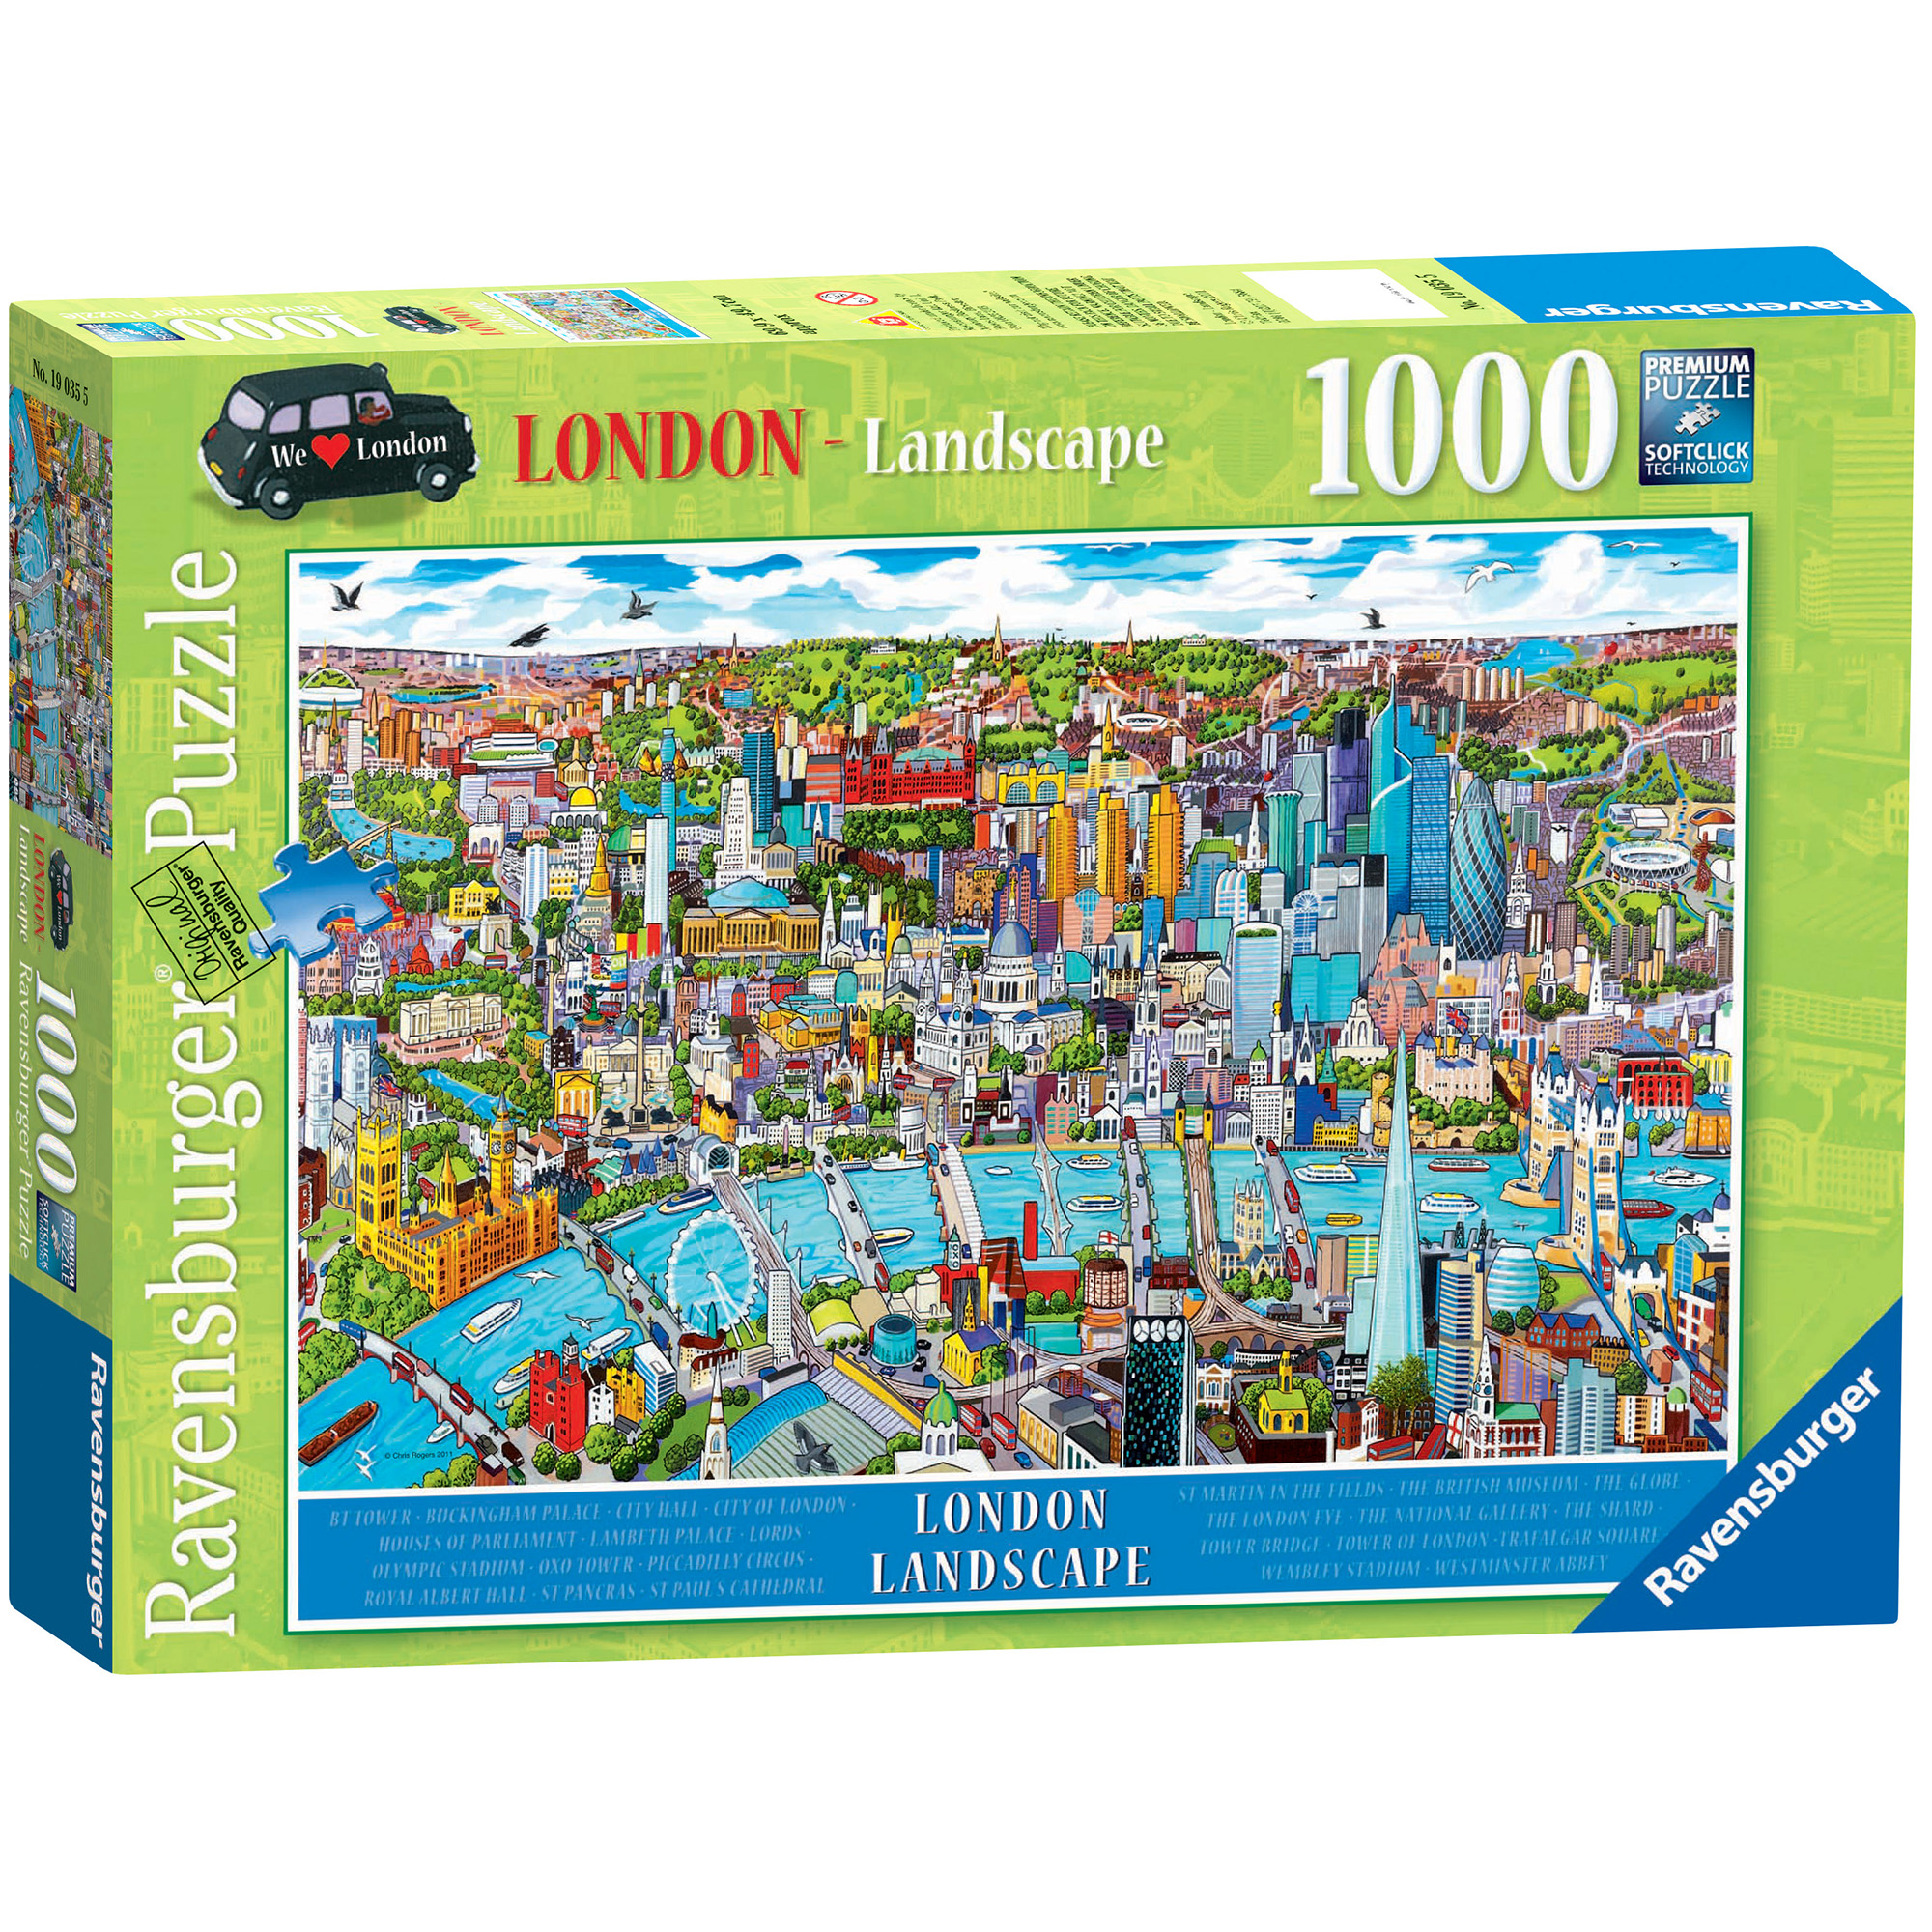 Ravensburger London Landscape 1000 Piece Puzzle